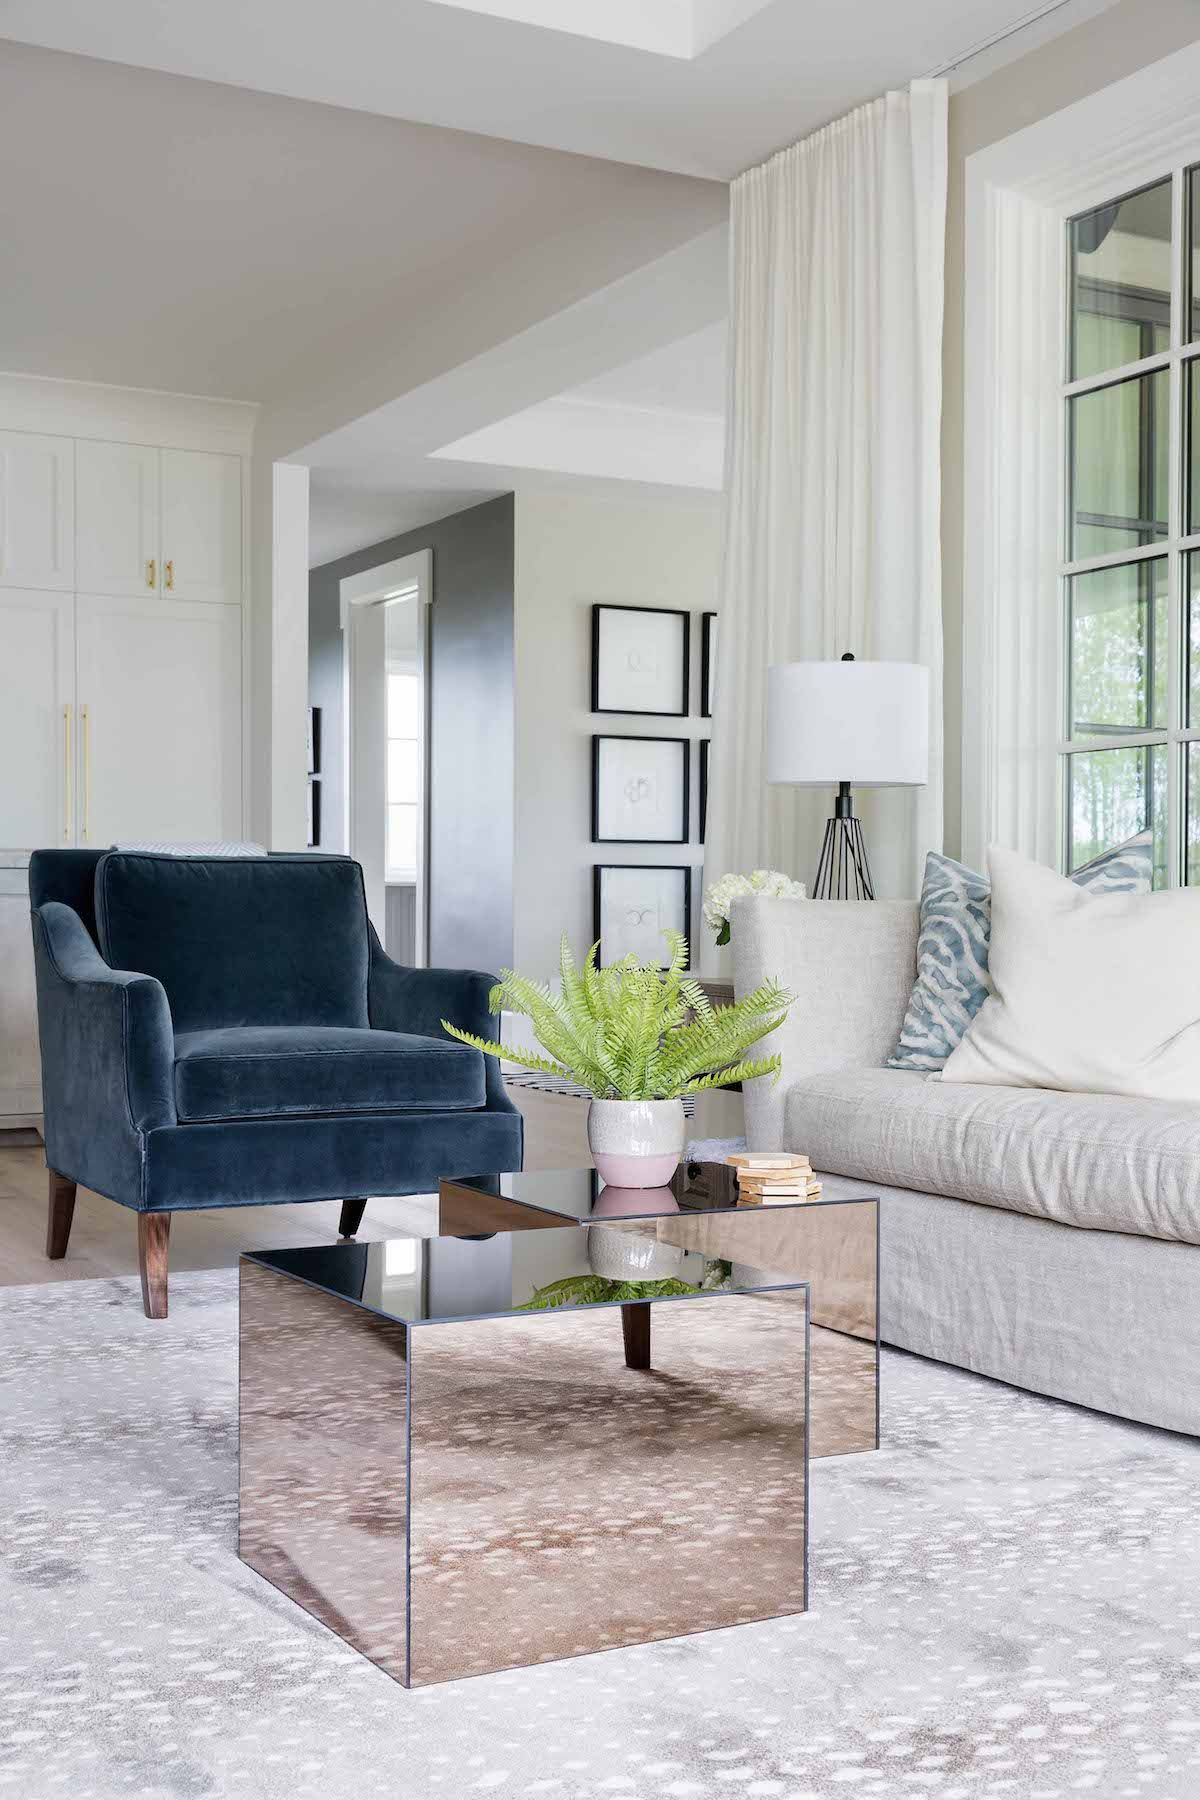 Charming Calgary Home Tour Interview With Designer Reena Sotropa